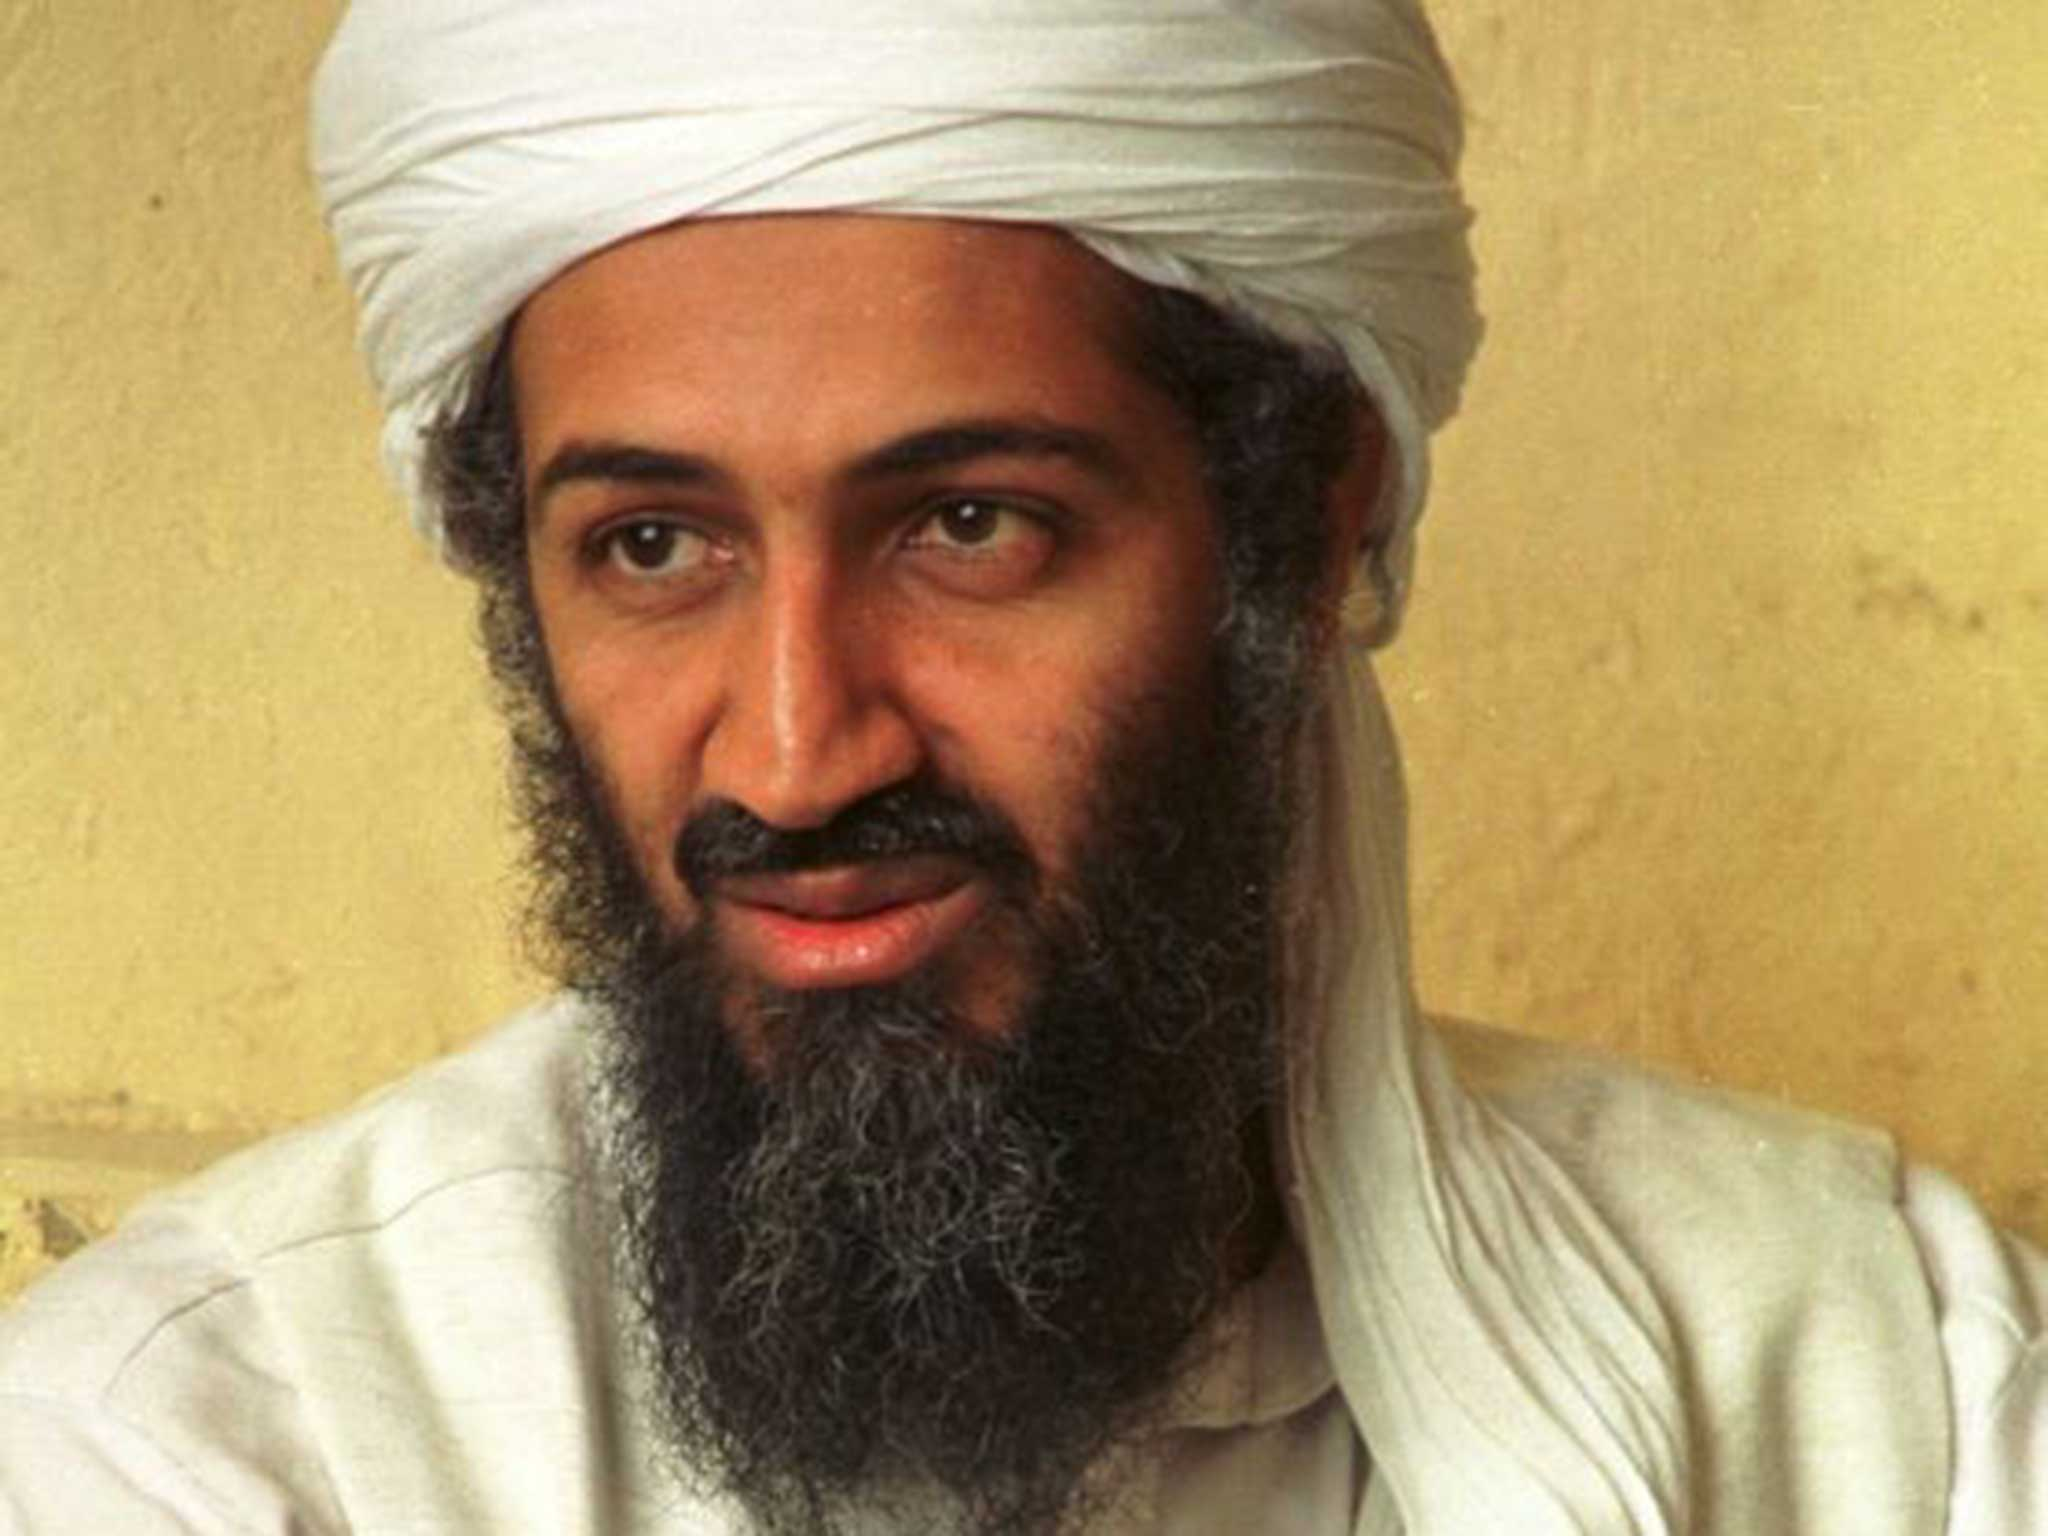 Exclusive: White House Fakes Osama Bin Laden Dead Picture new pics